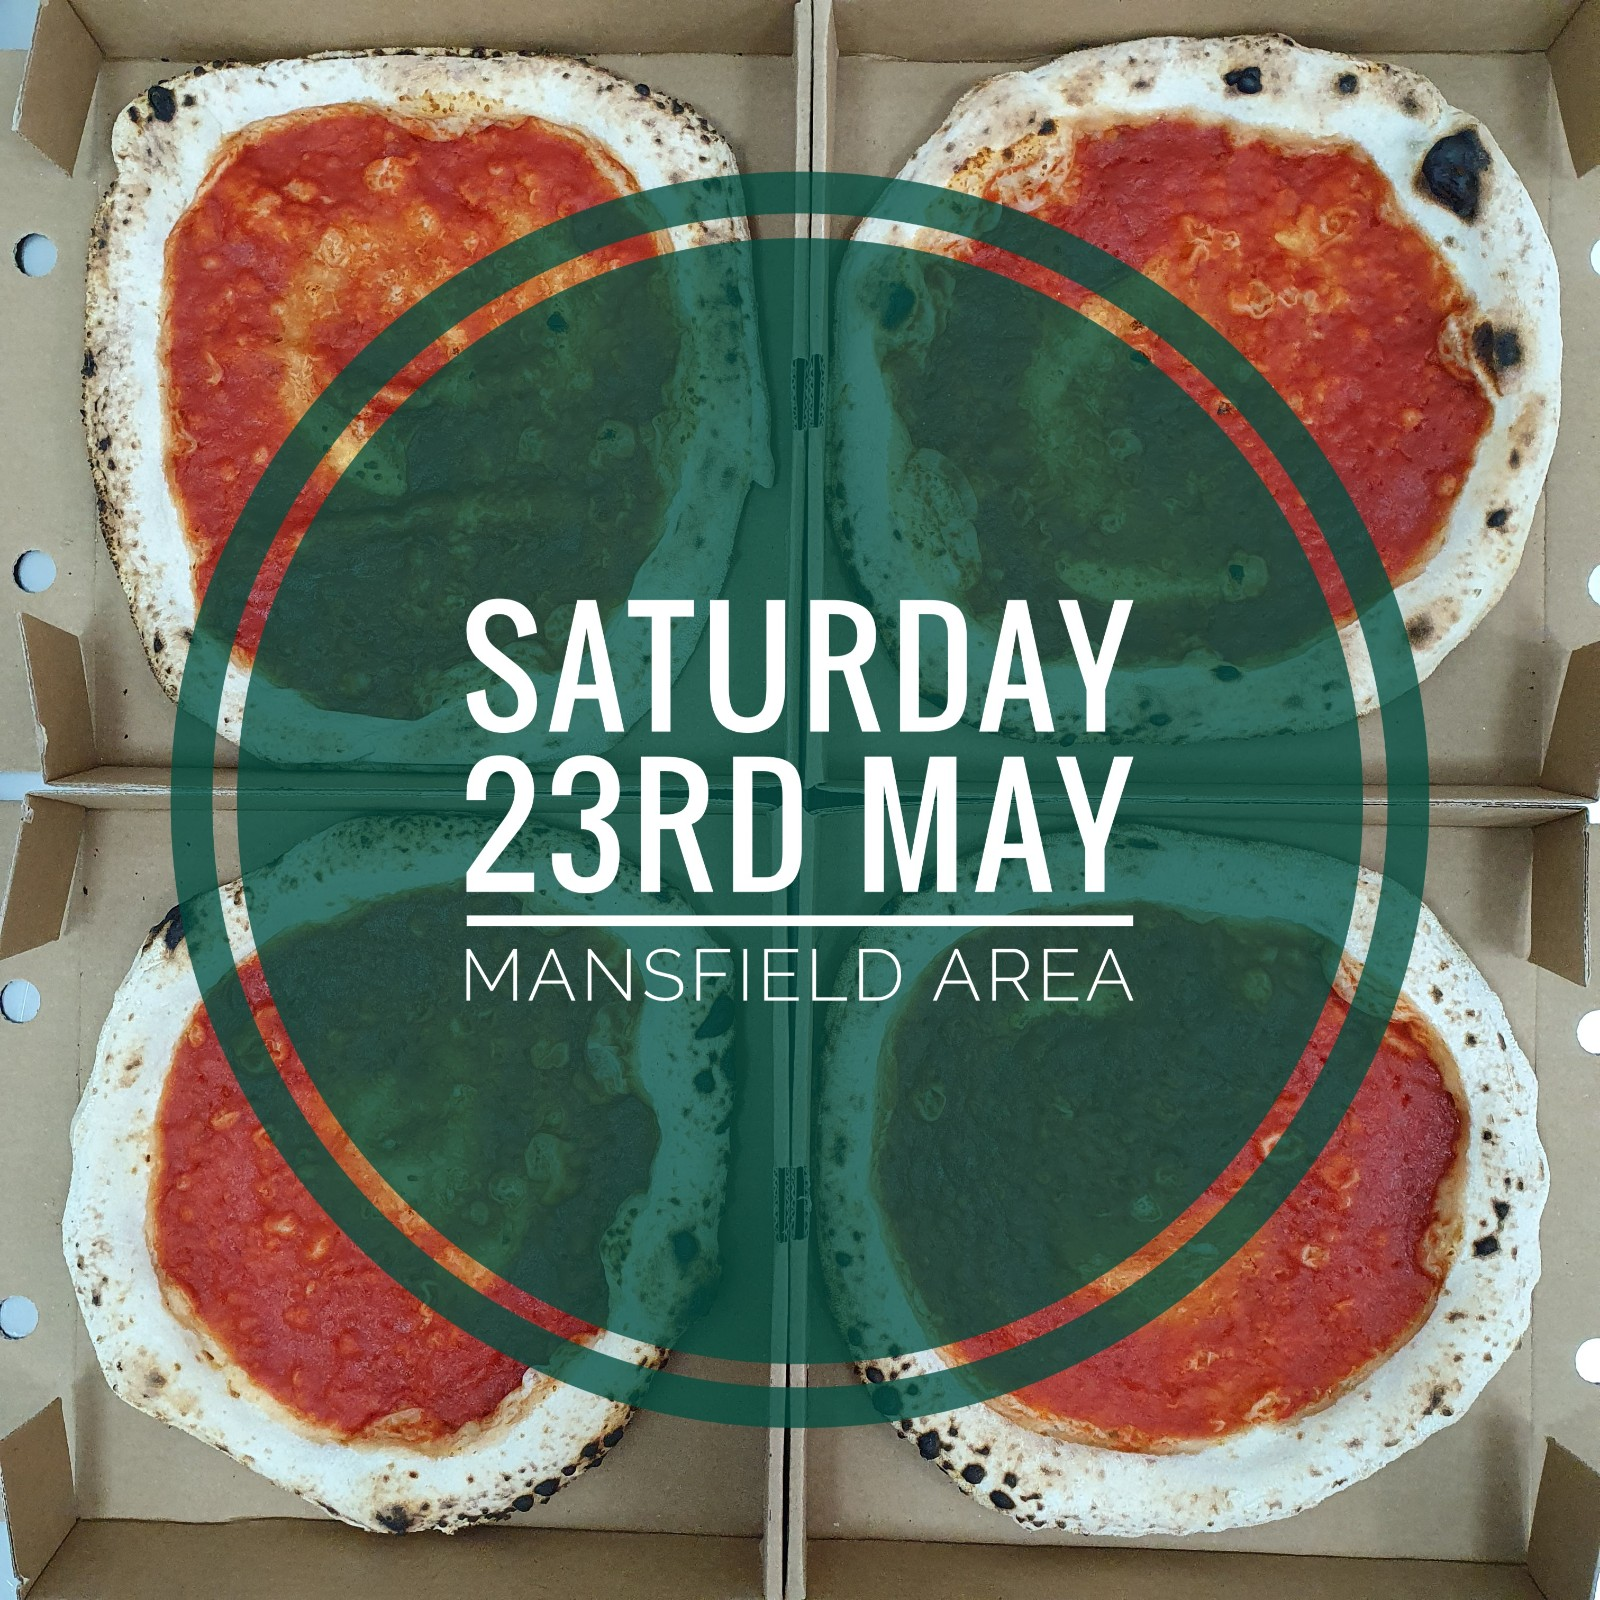 Sourdough Wood Fired Pizza Kit (SATURDAY 23RD MAY MANSFIELD AREA)